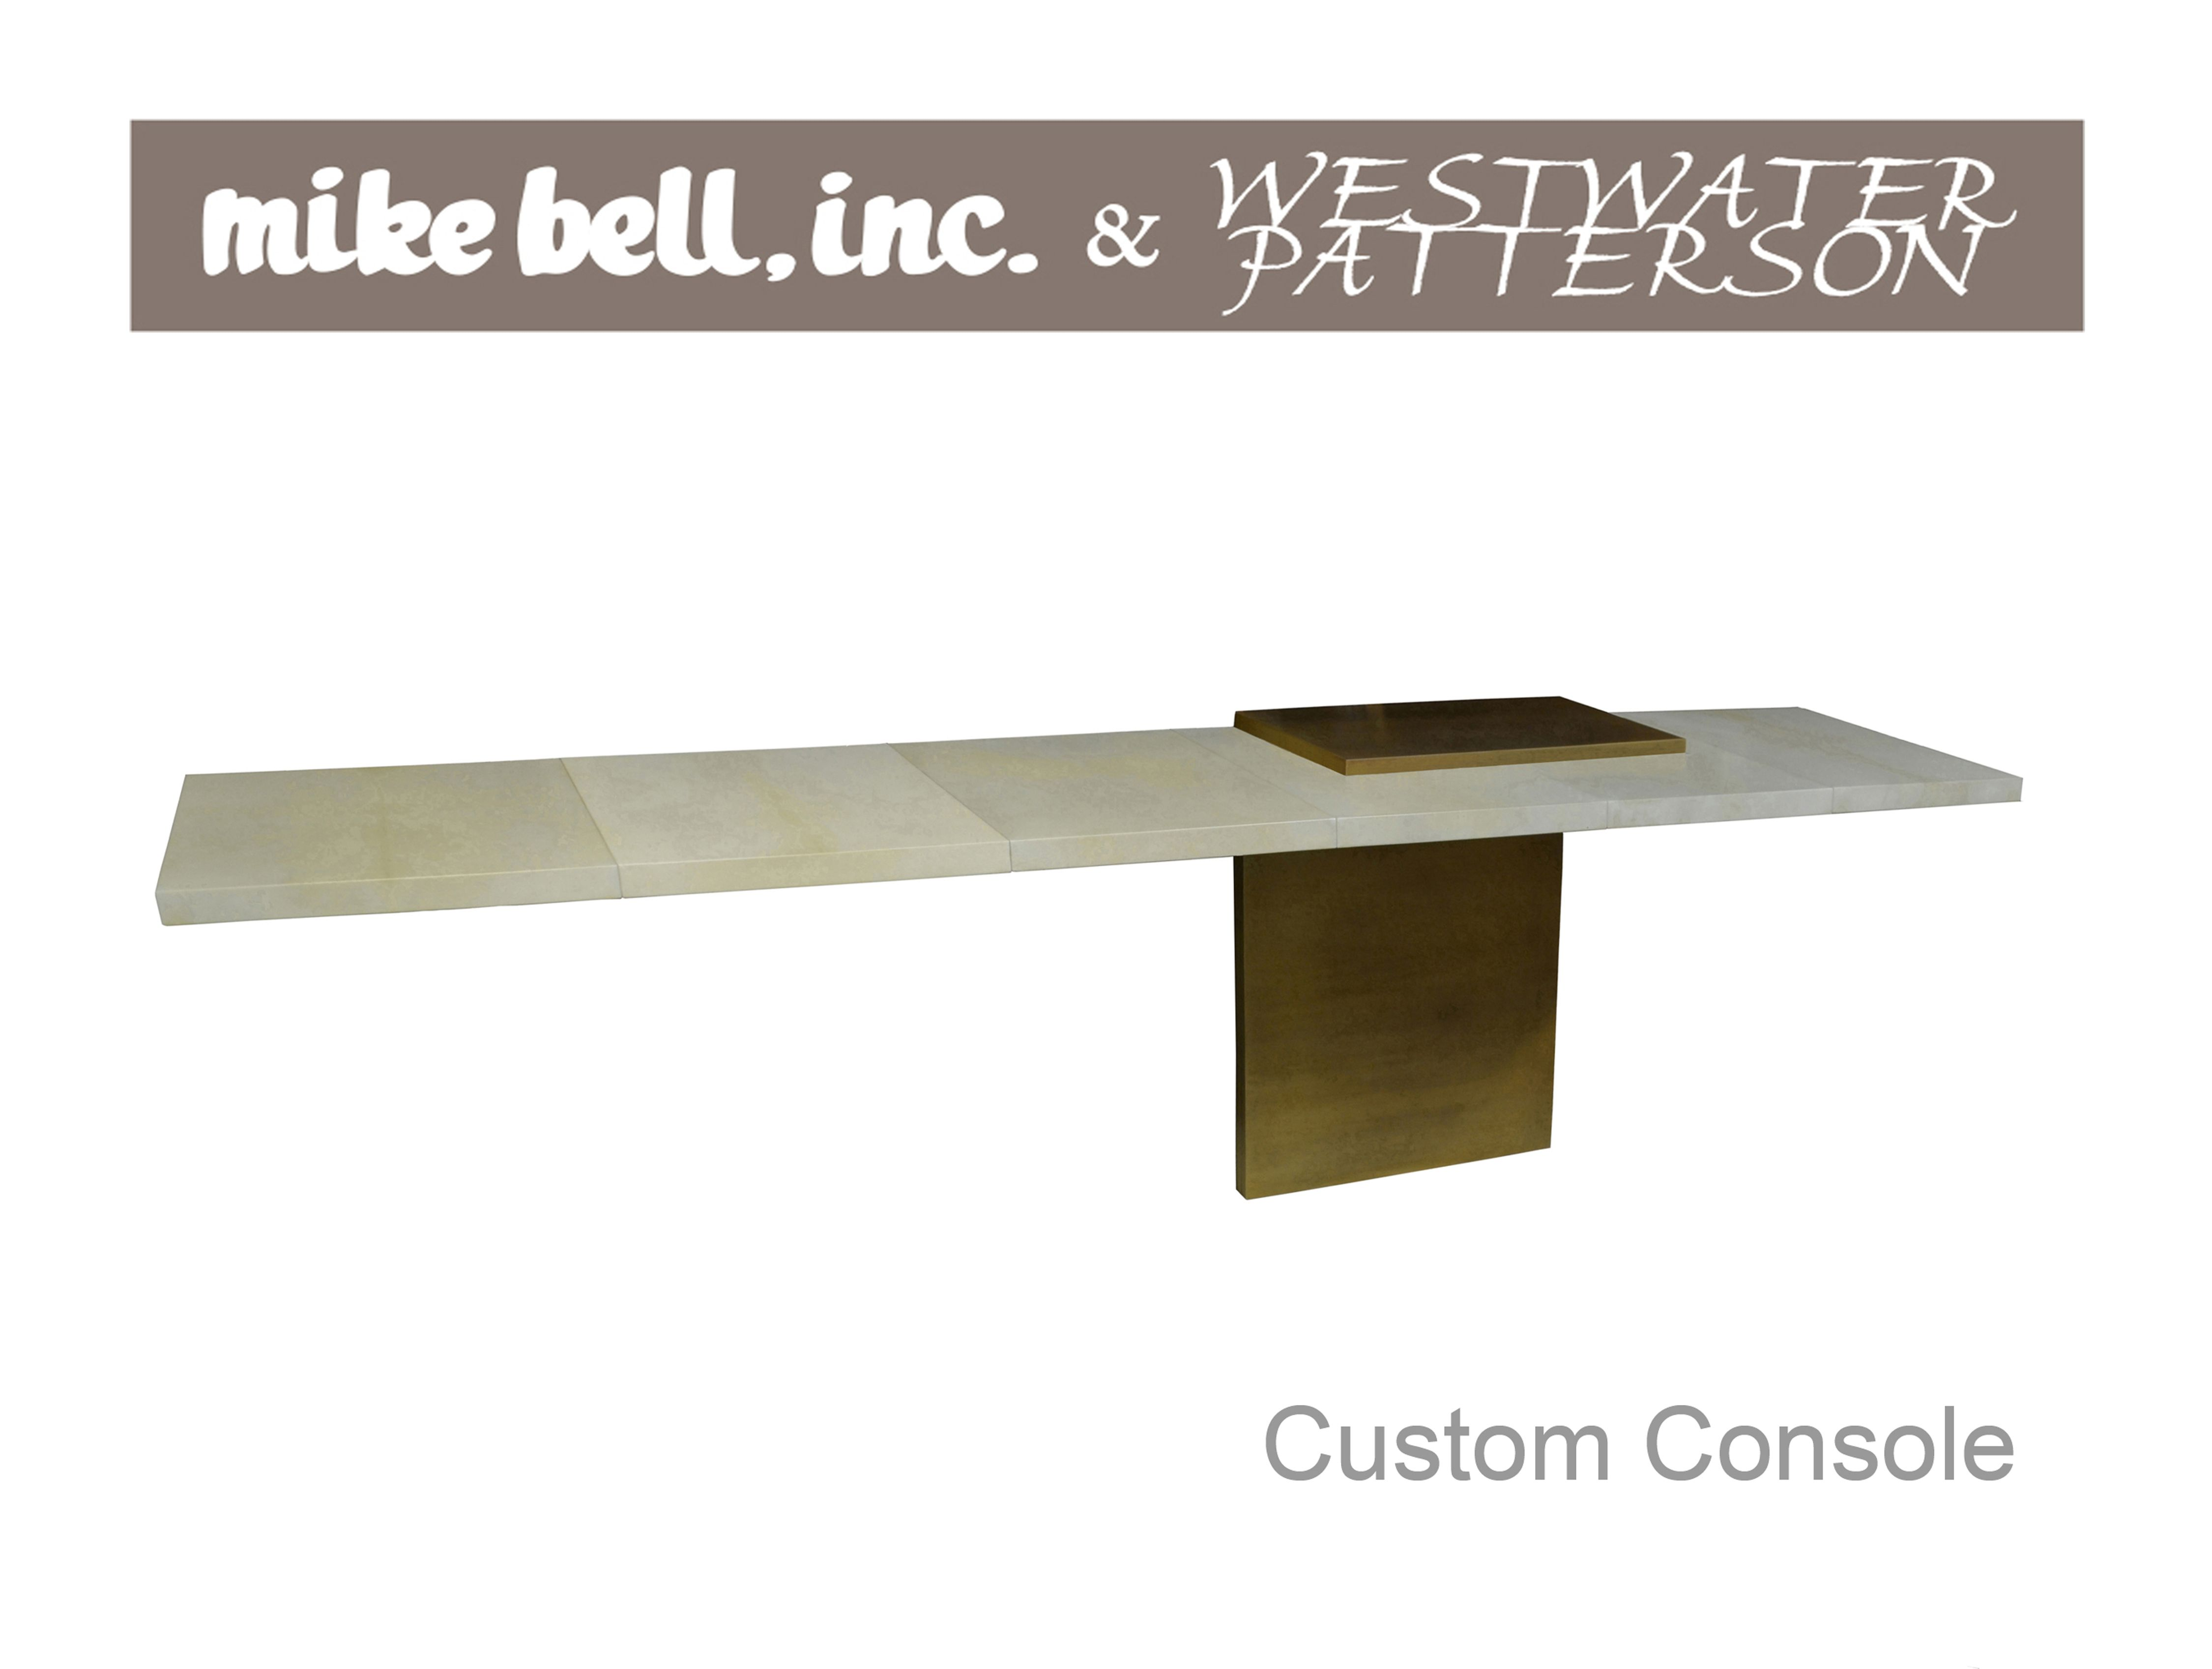 A stunning custom console design for a client.